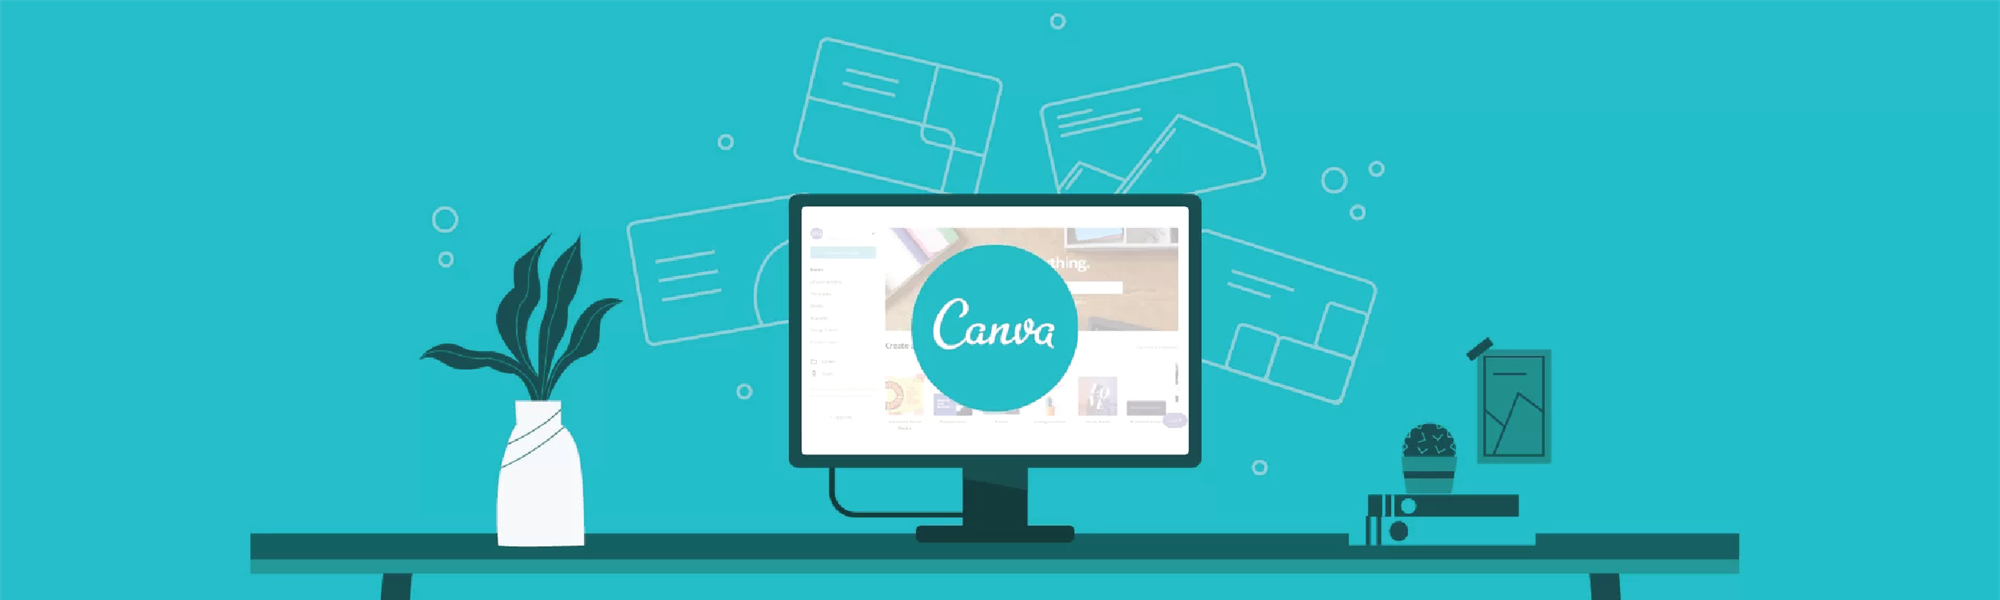 Create with Canva // Create, Post, Engage! Getting the Most out of Social Media